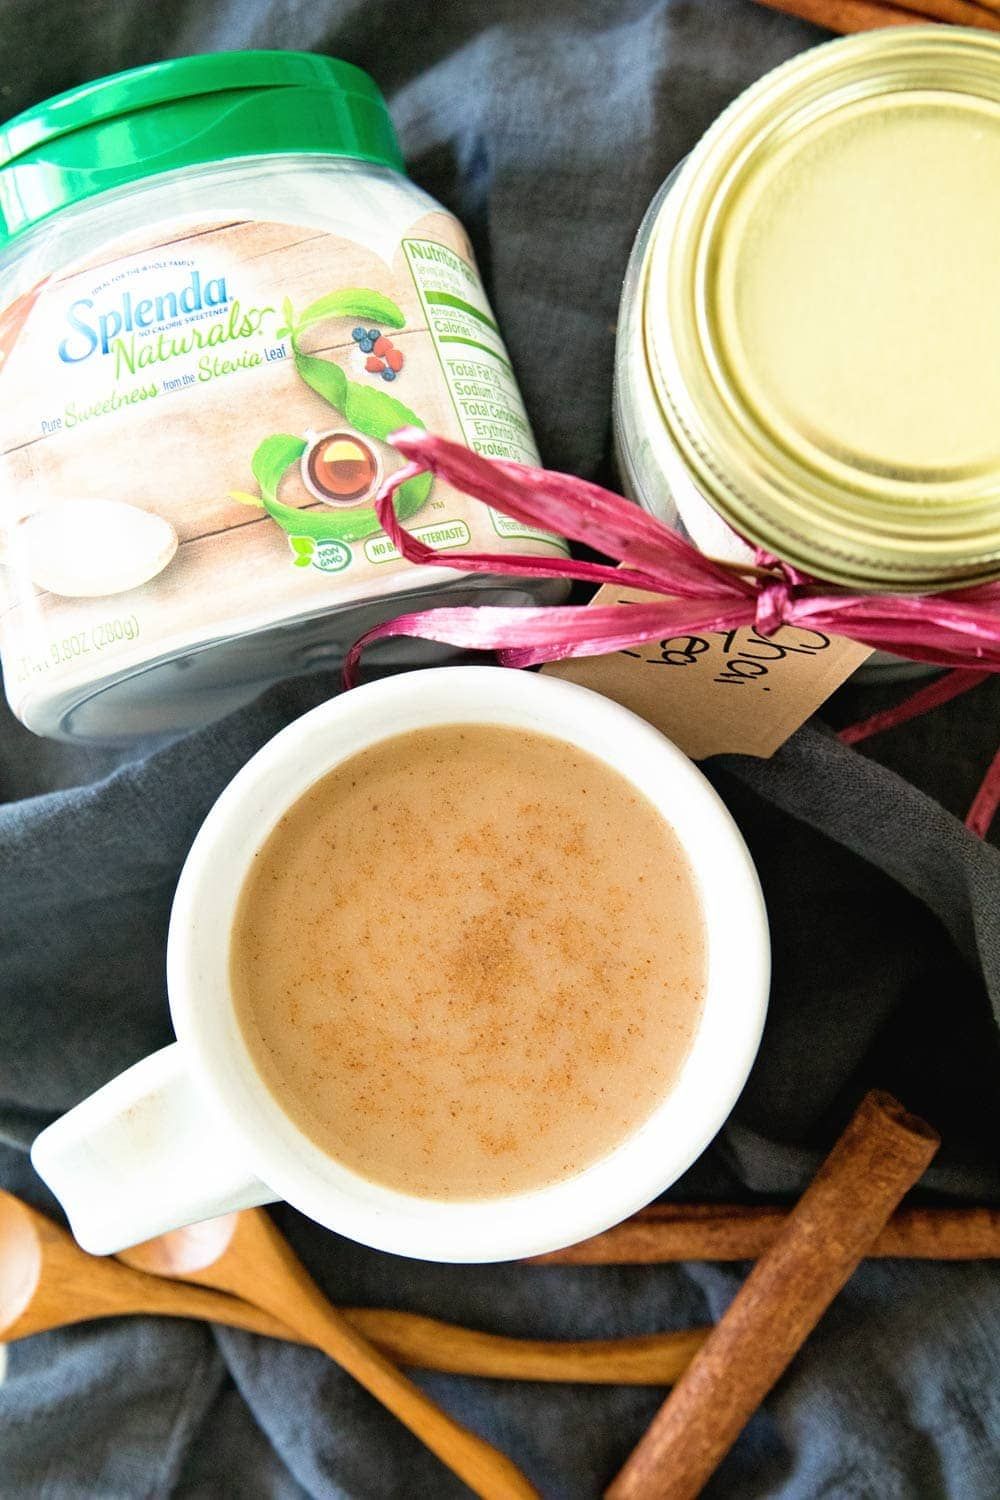 Now You Can Make Your Own Homemade Chai Tea Mix at Home!